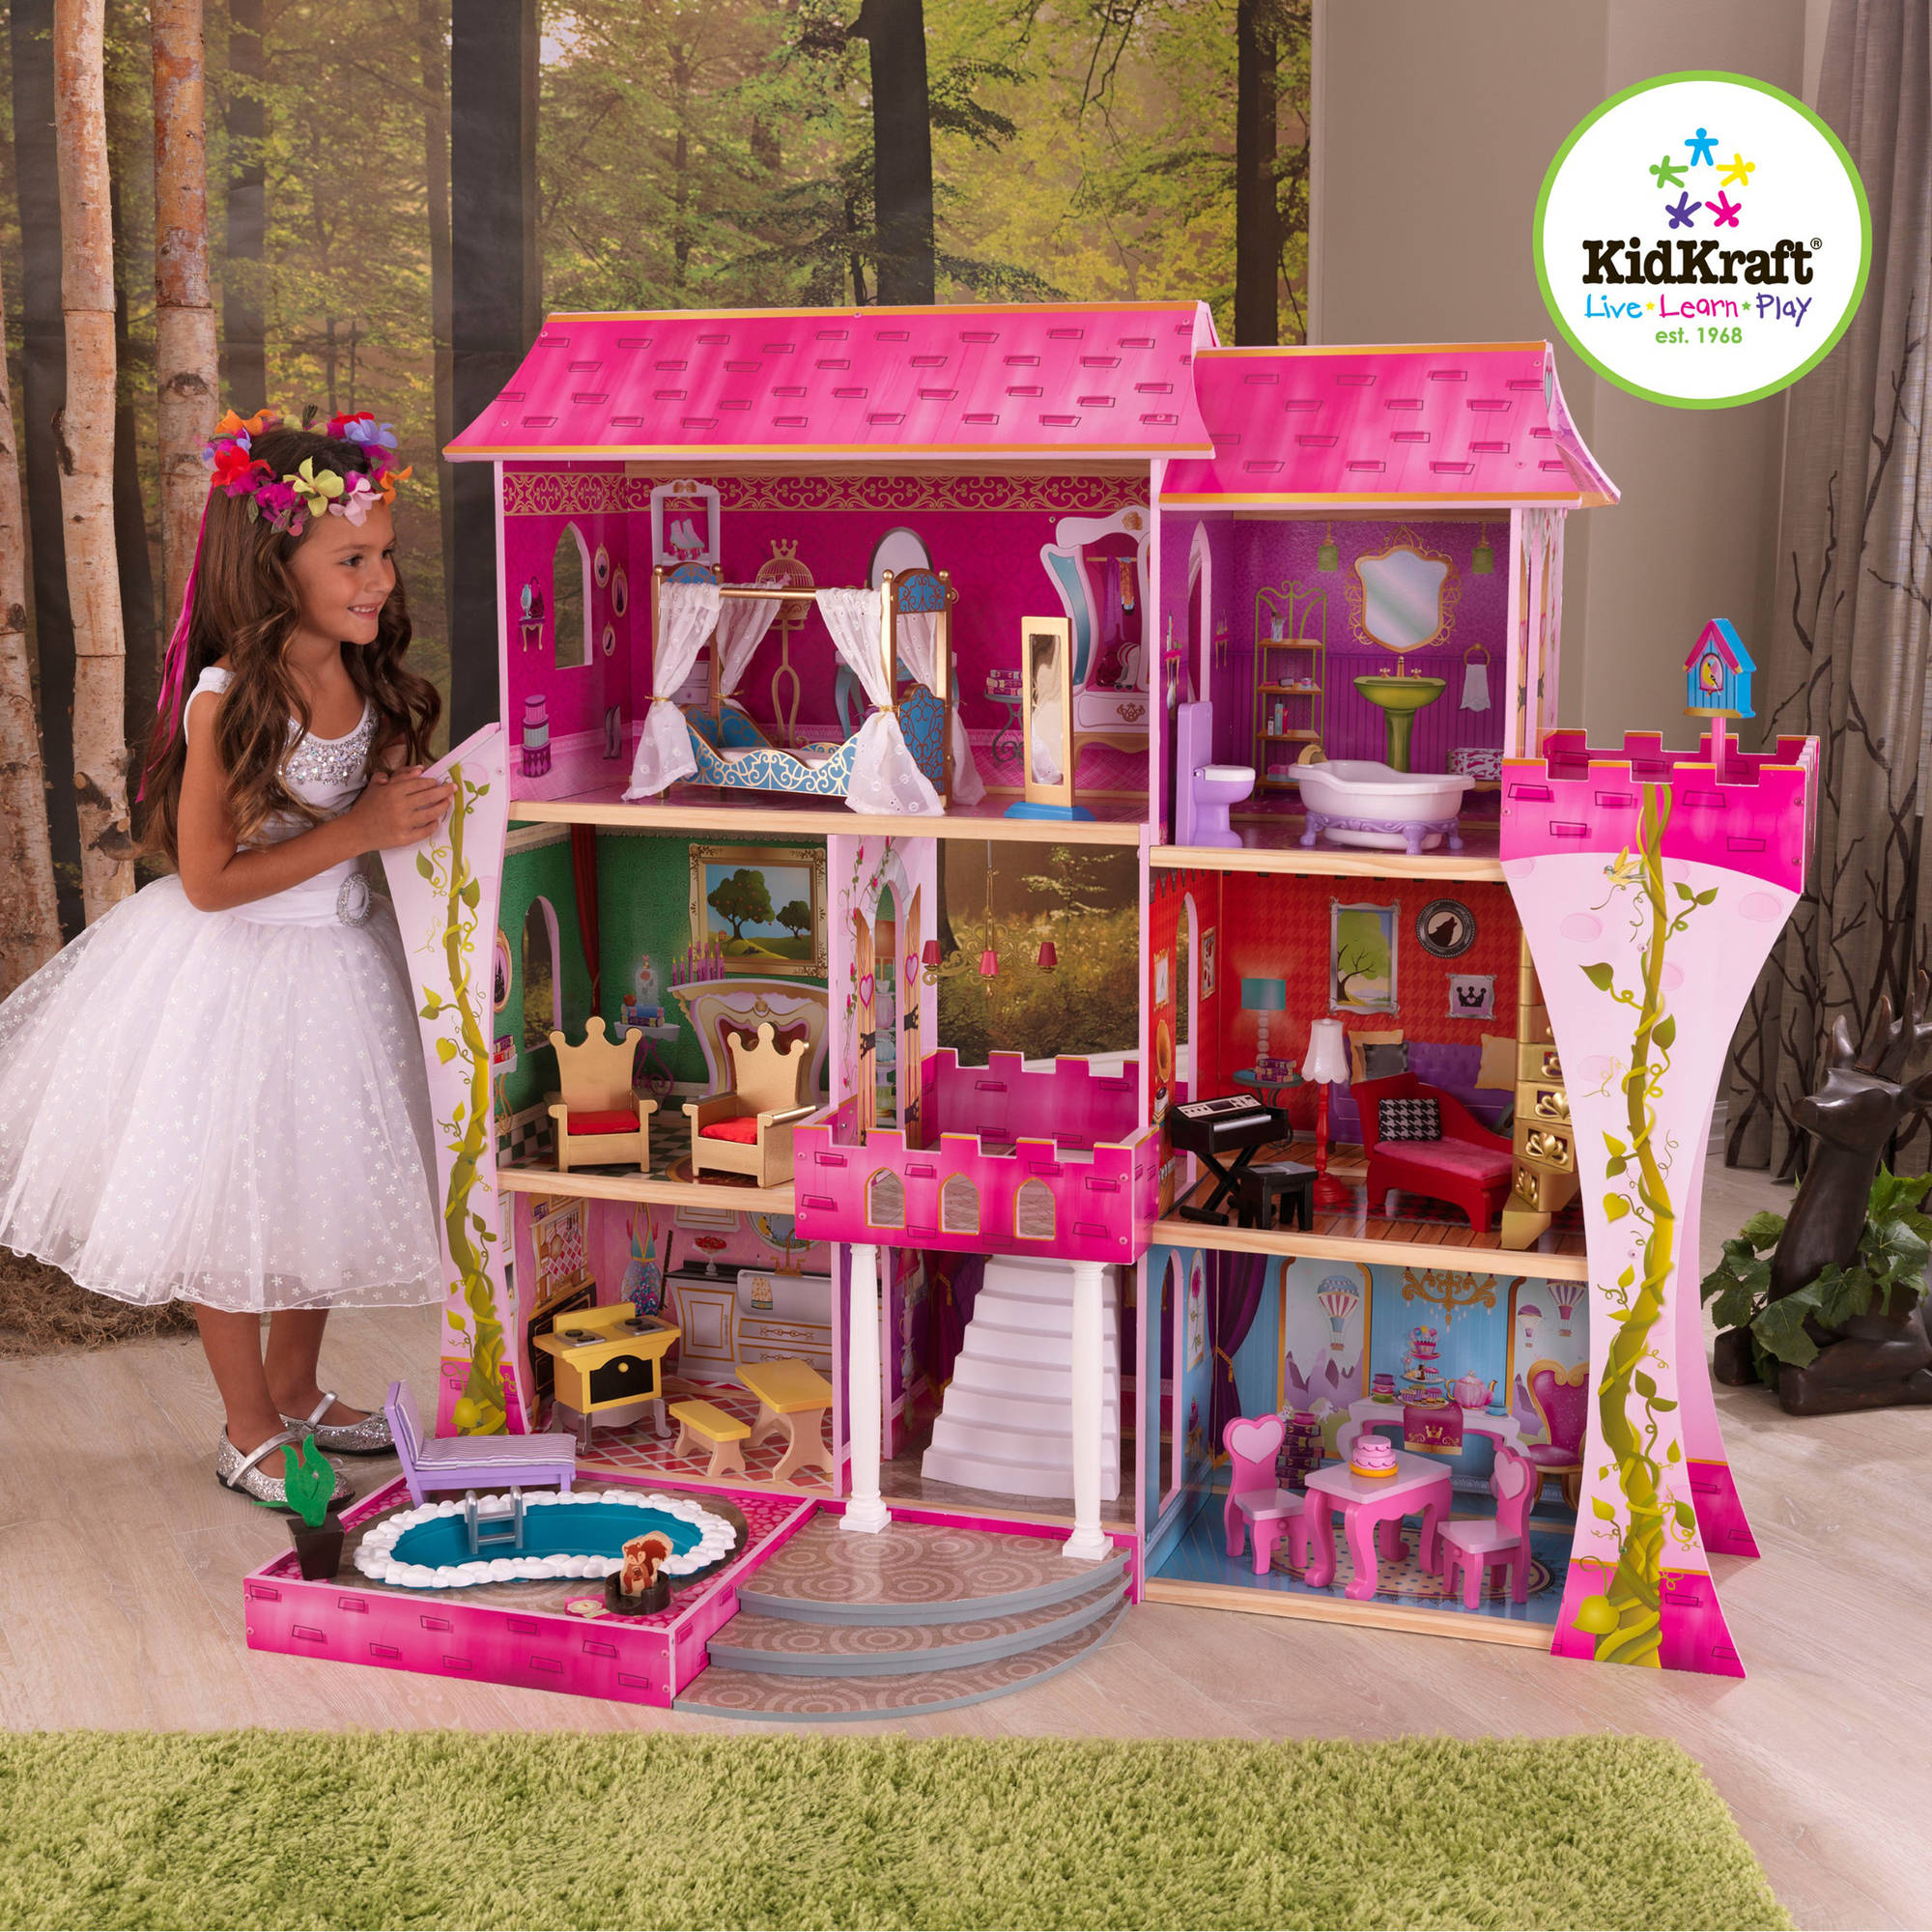 KidKraft Once Upon a Time Wooden Dollhouse with 23 Pieces of Furniture